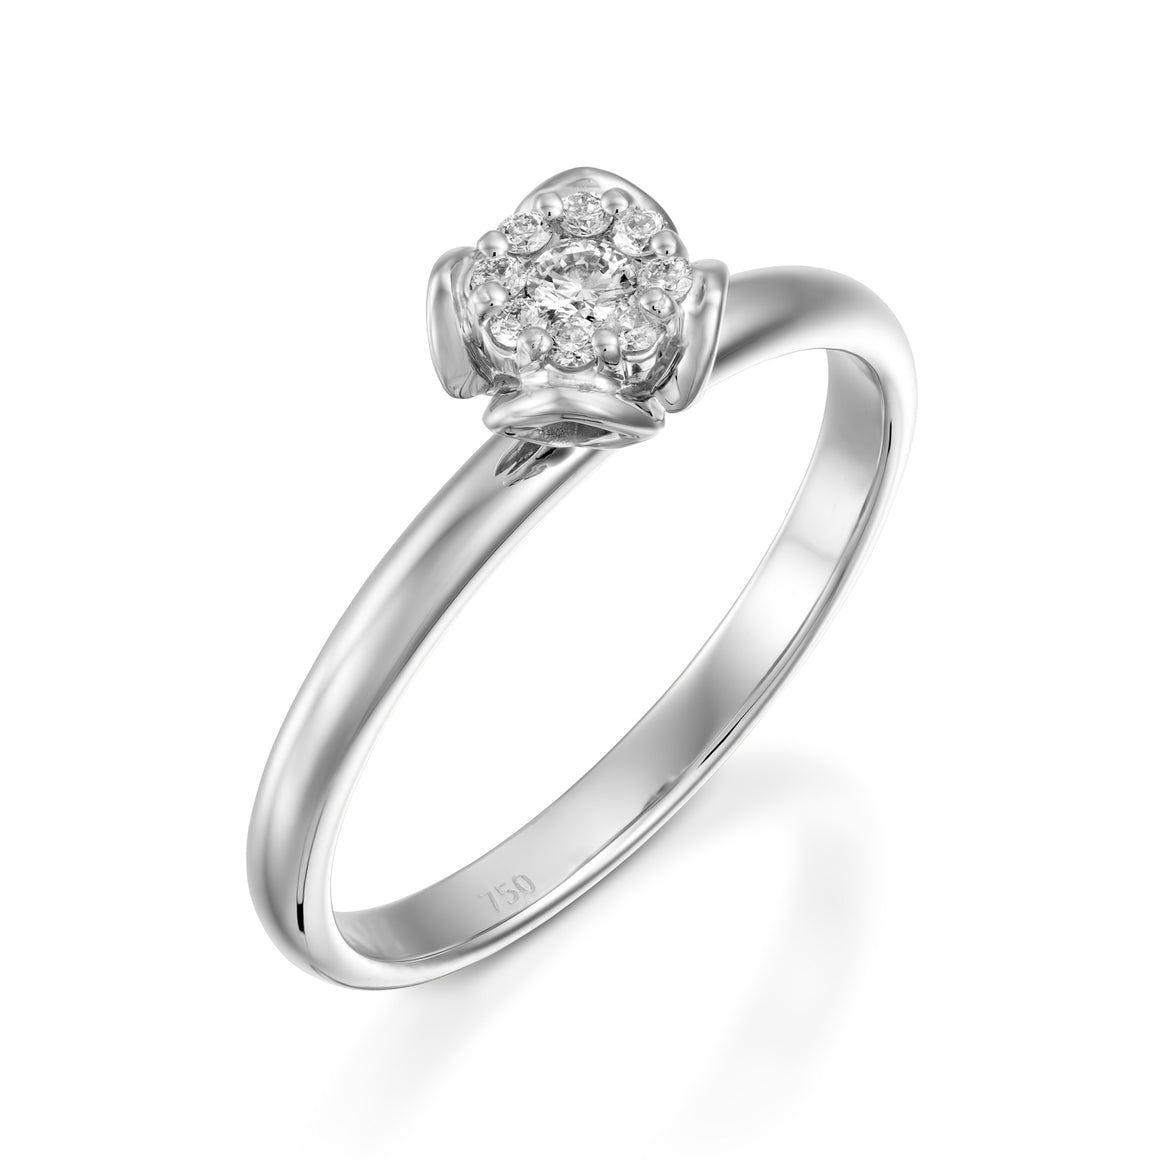 RS744AS-0.12 carat White gold flower diamond engagement ring for women - Petite Fleur